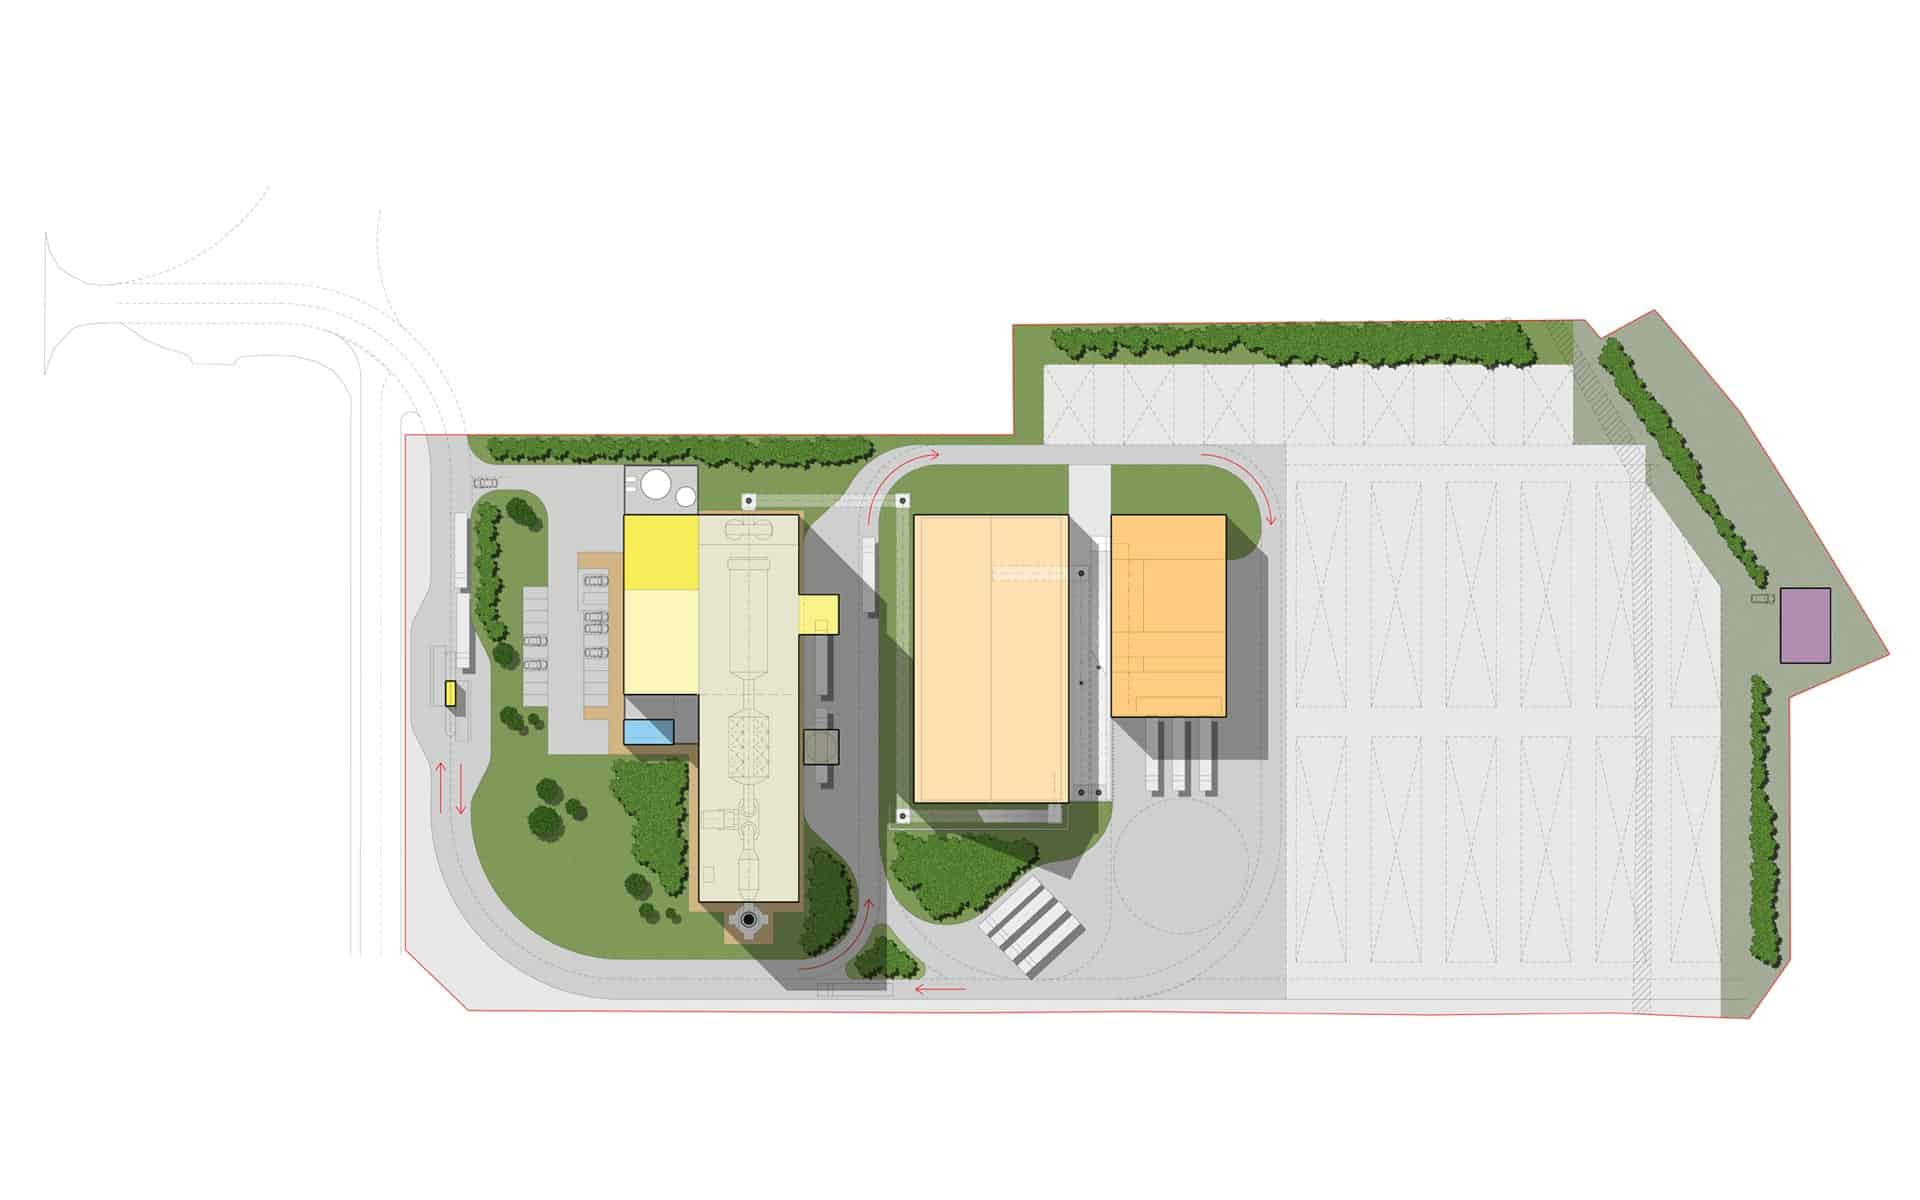 Biomass Energy Plant,HRI Architects, Architectural Services Inverness Highland